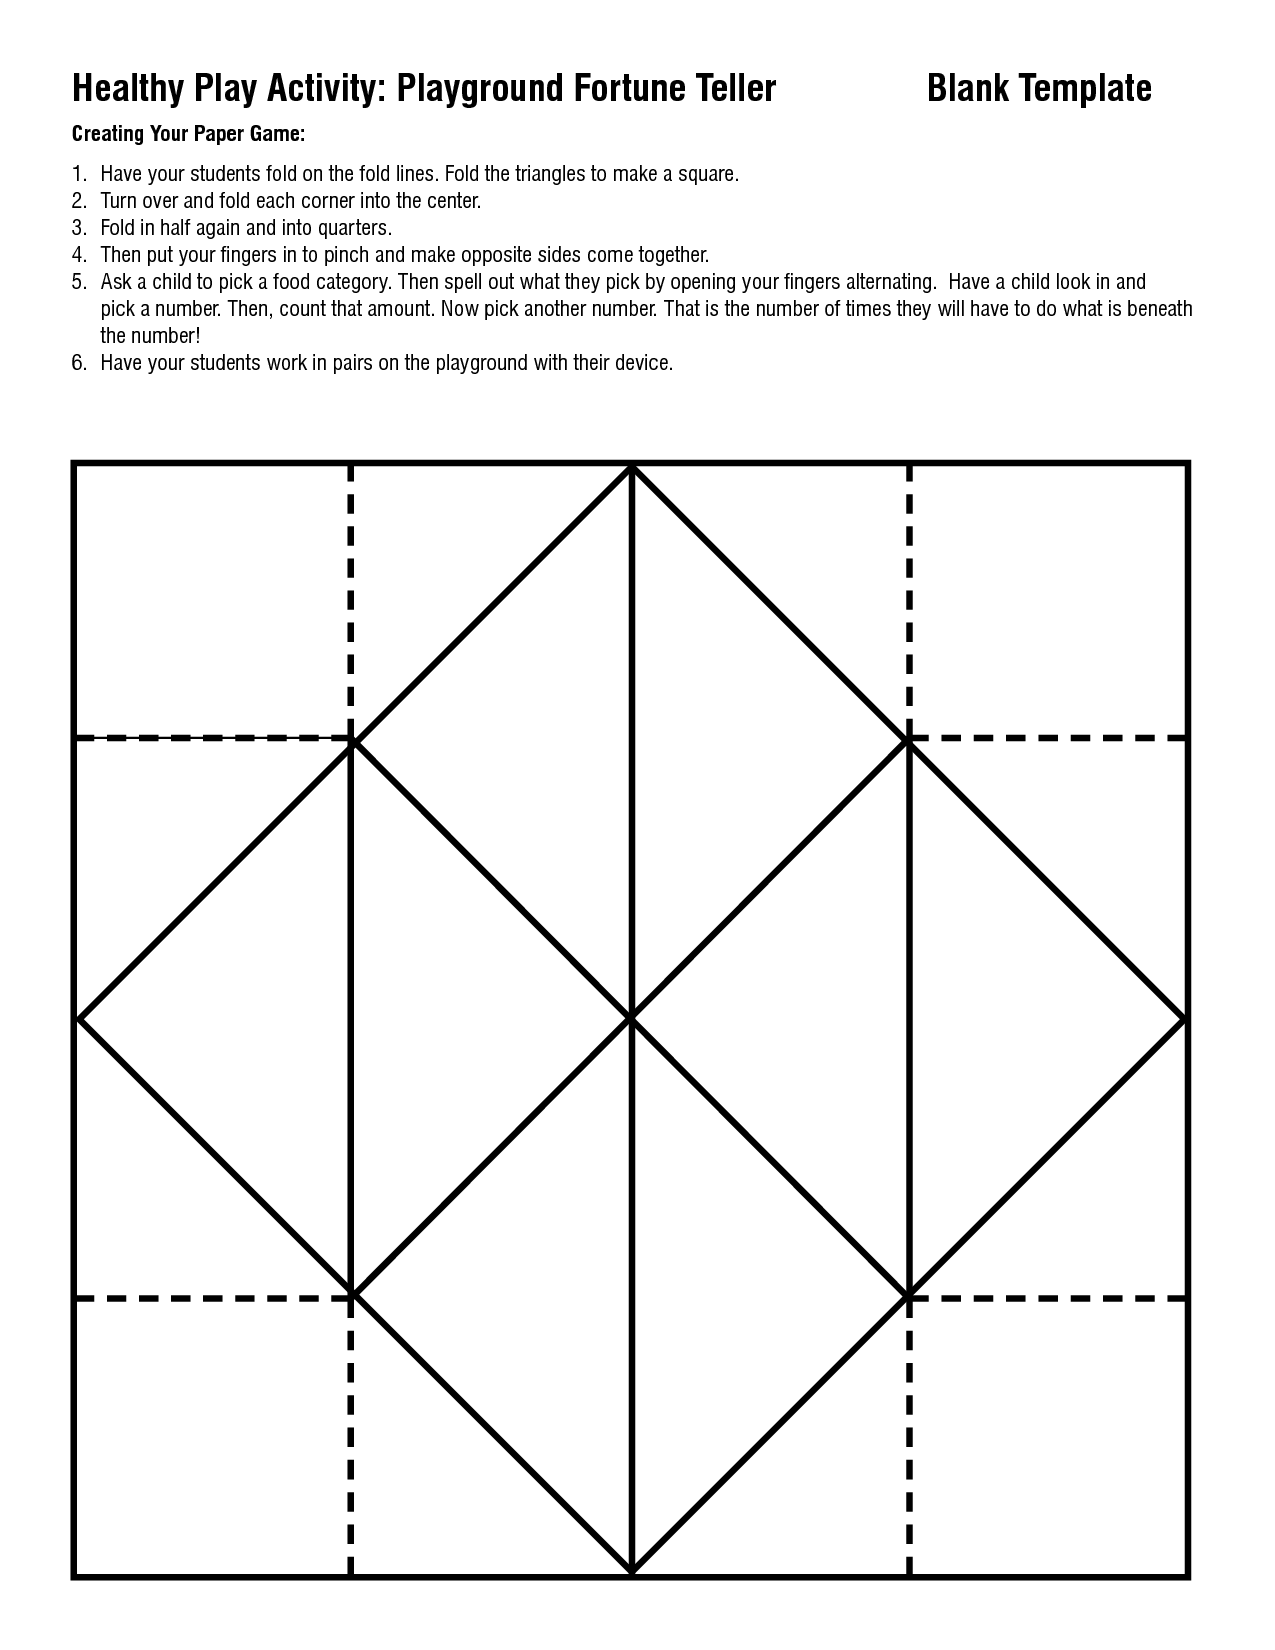 7 Best Images of Fortune Teller Template Printable - Paper ... - photo#37